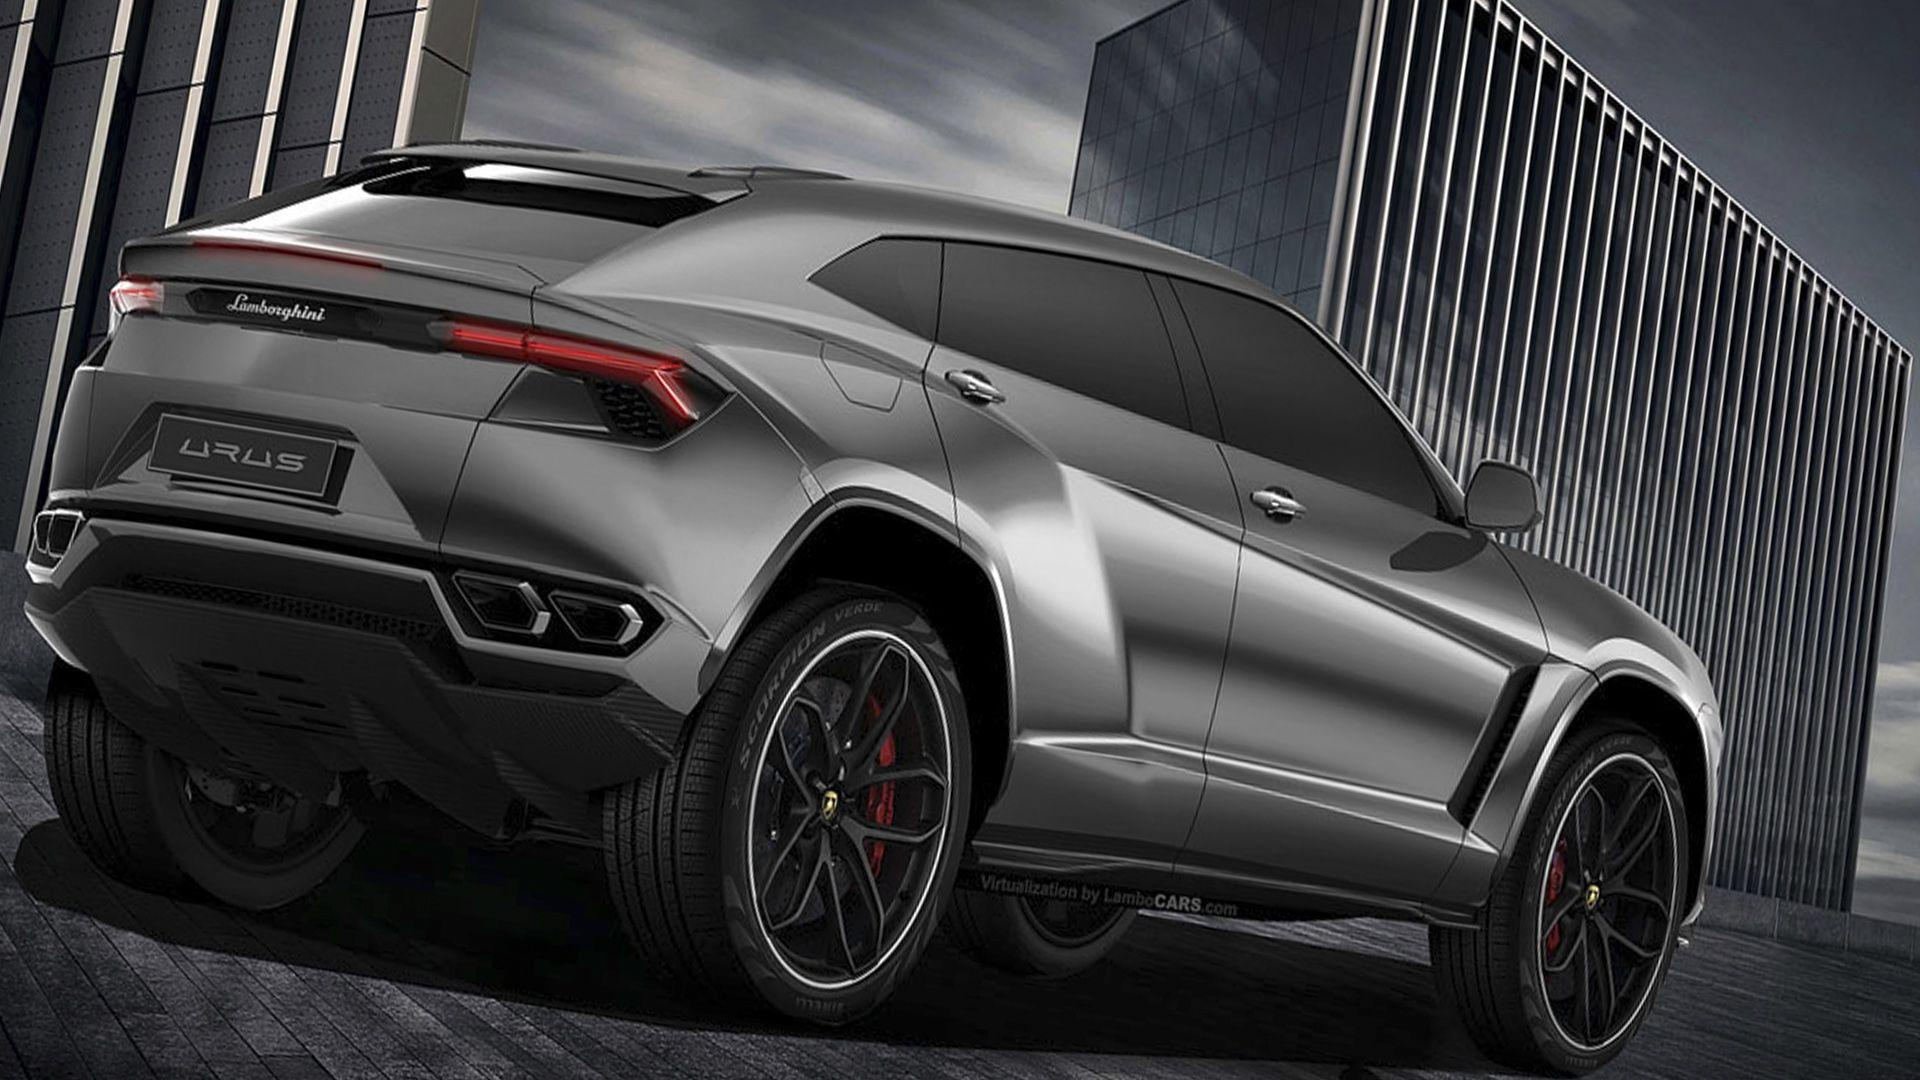 lamborghini urus wallpapers - wallpaper cave